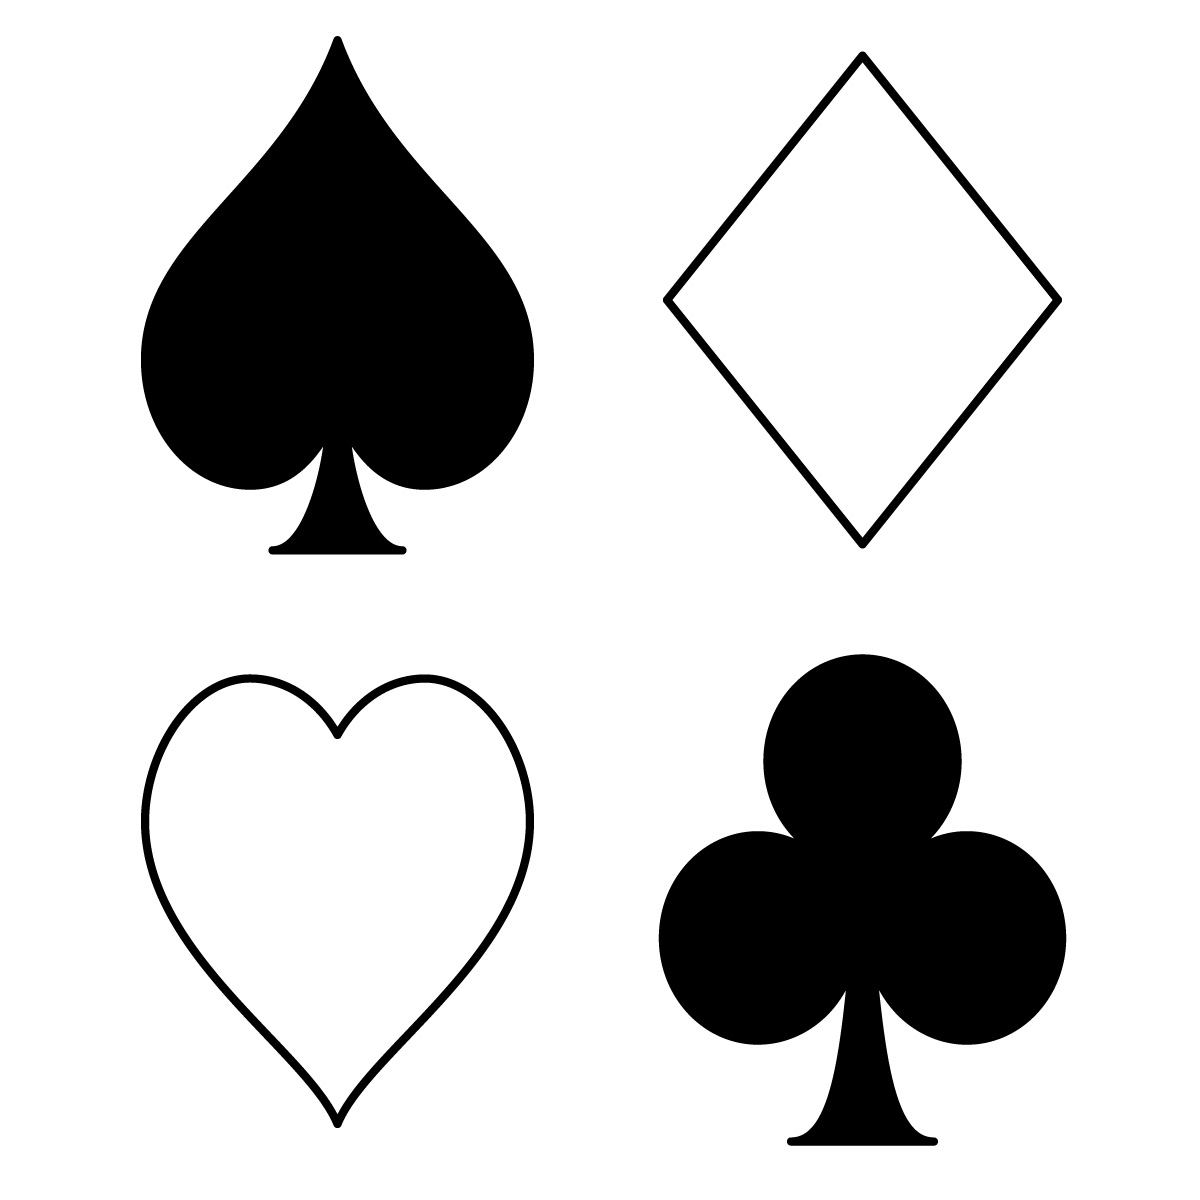 Pictures Of Deck Of Cards - ClipArt Best